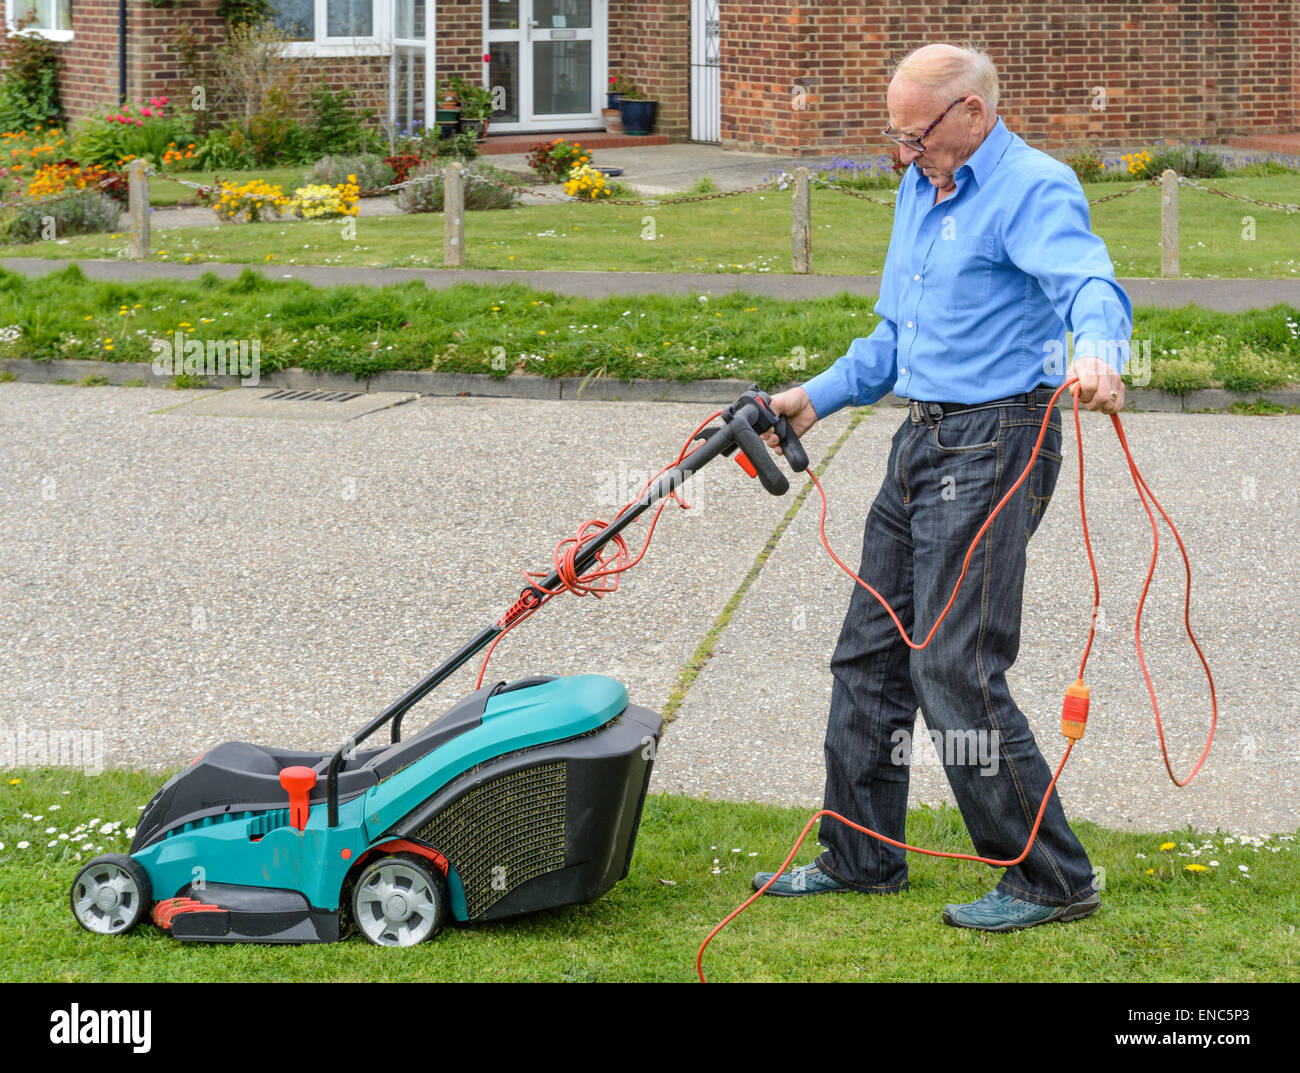 Elderly man mowing the grass verge by the roadside. - Stock Image